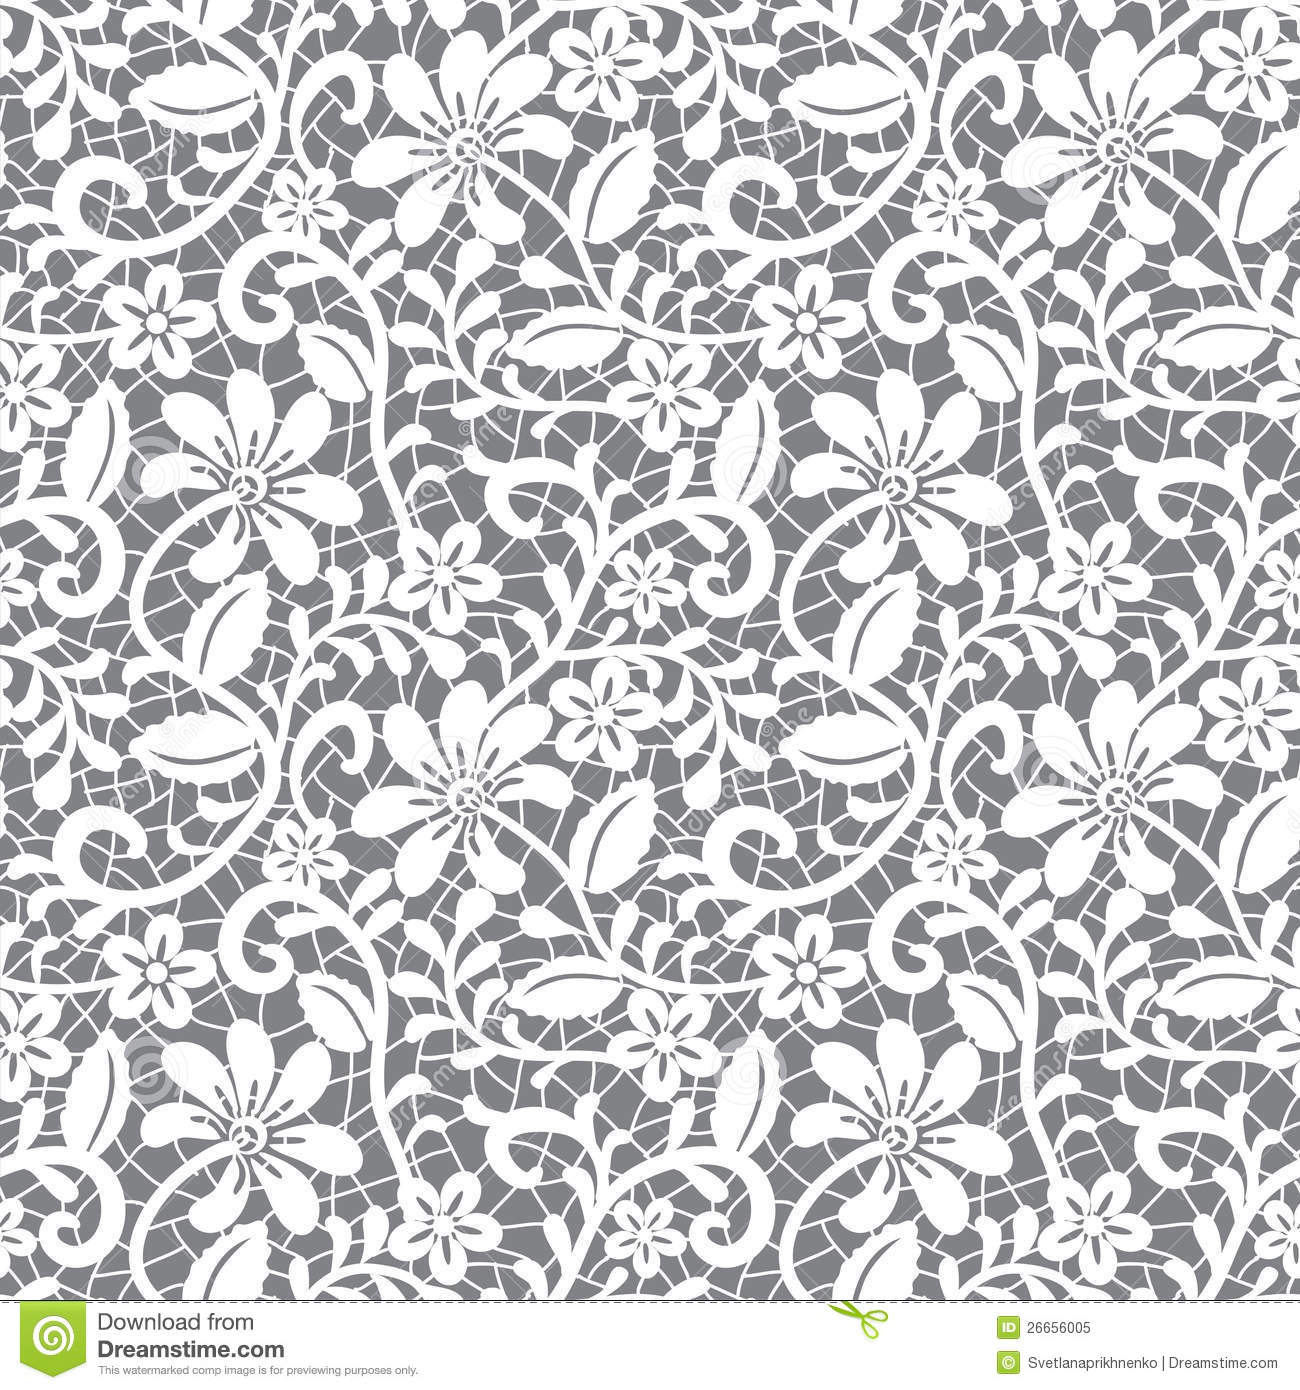 Download Lace Pattern Clipart-Download Lace Pattern Clipart-5